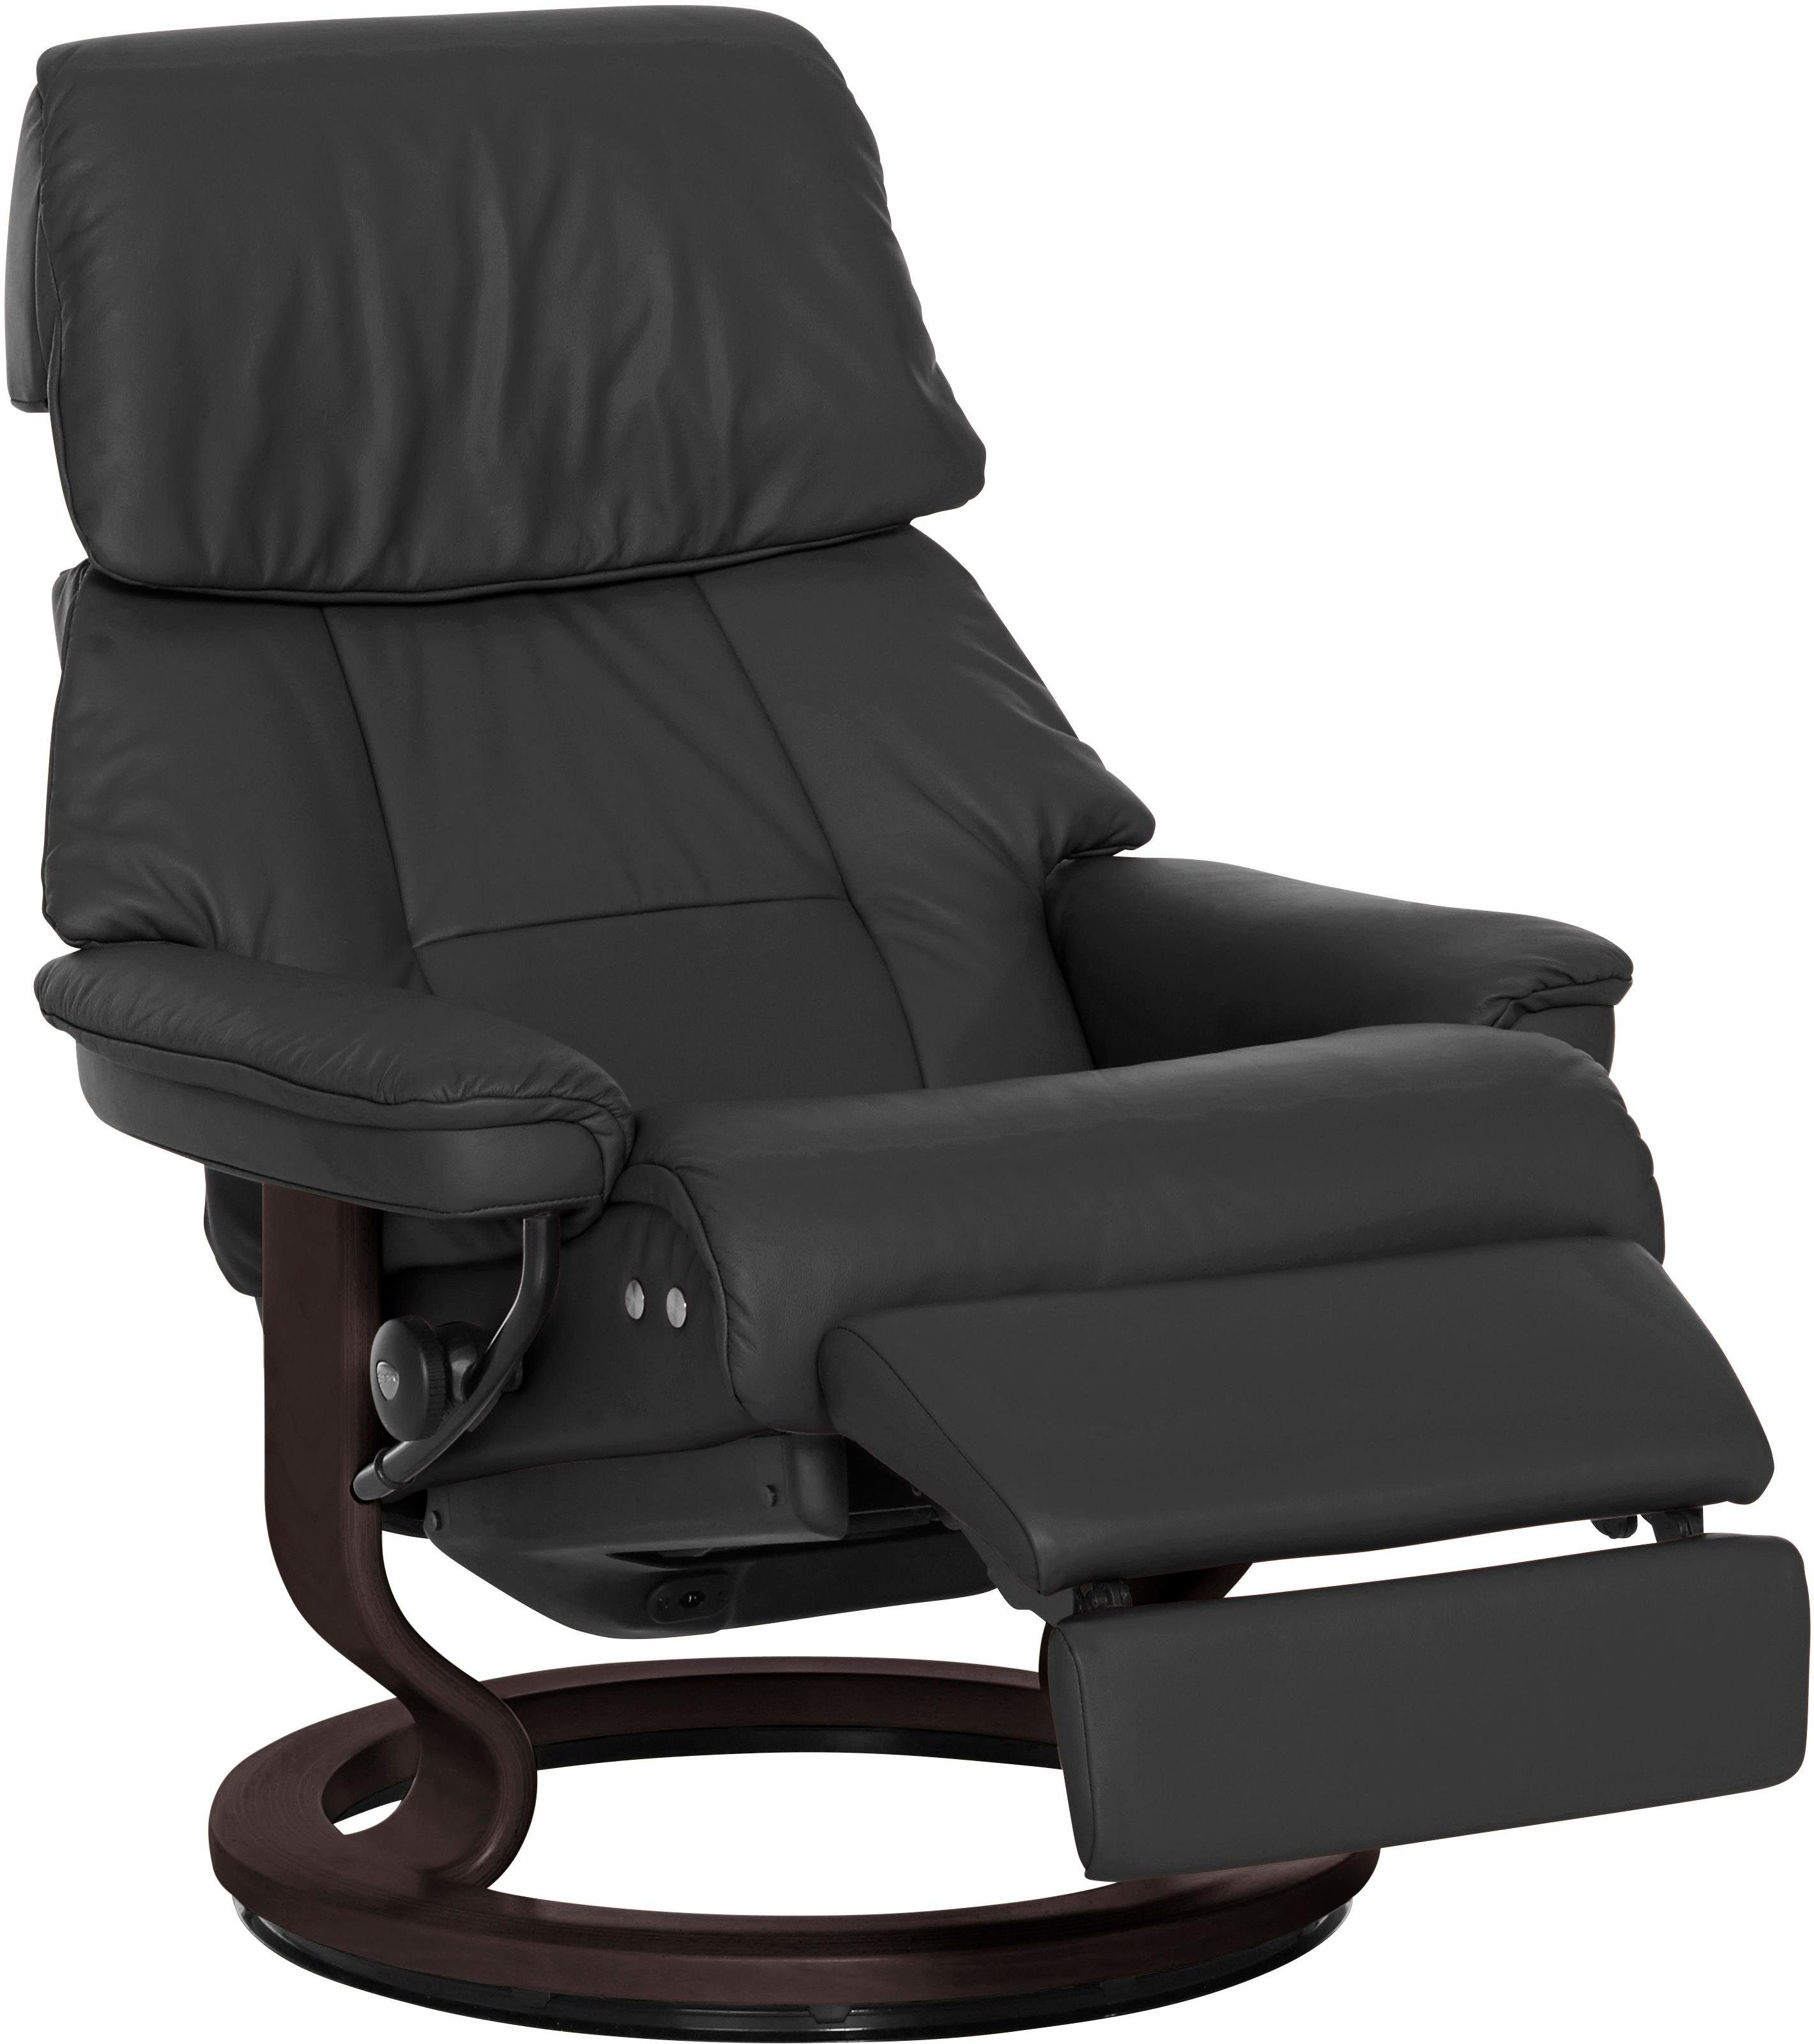 Stressless Ruby Stressless Relaxsessel Ruby Mit Classic Base Und Legcomfort